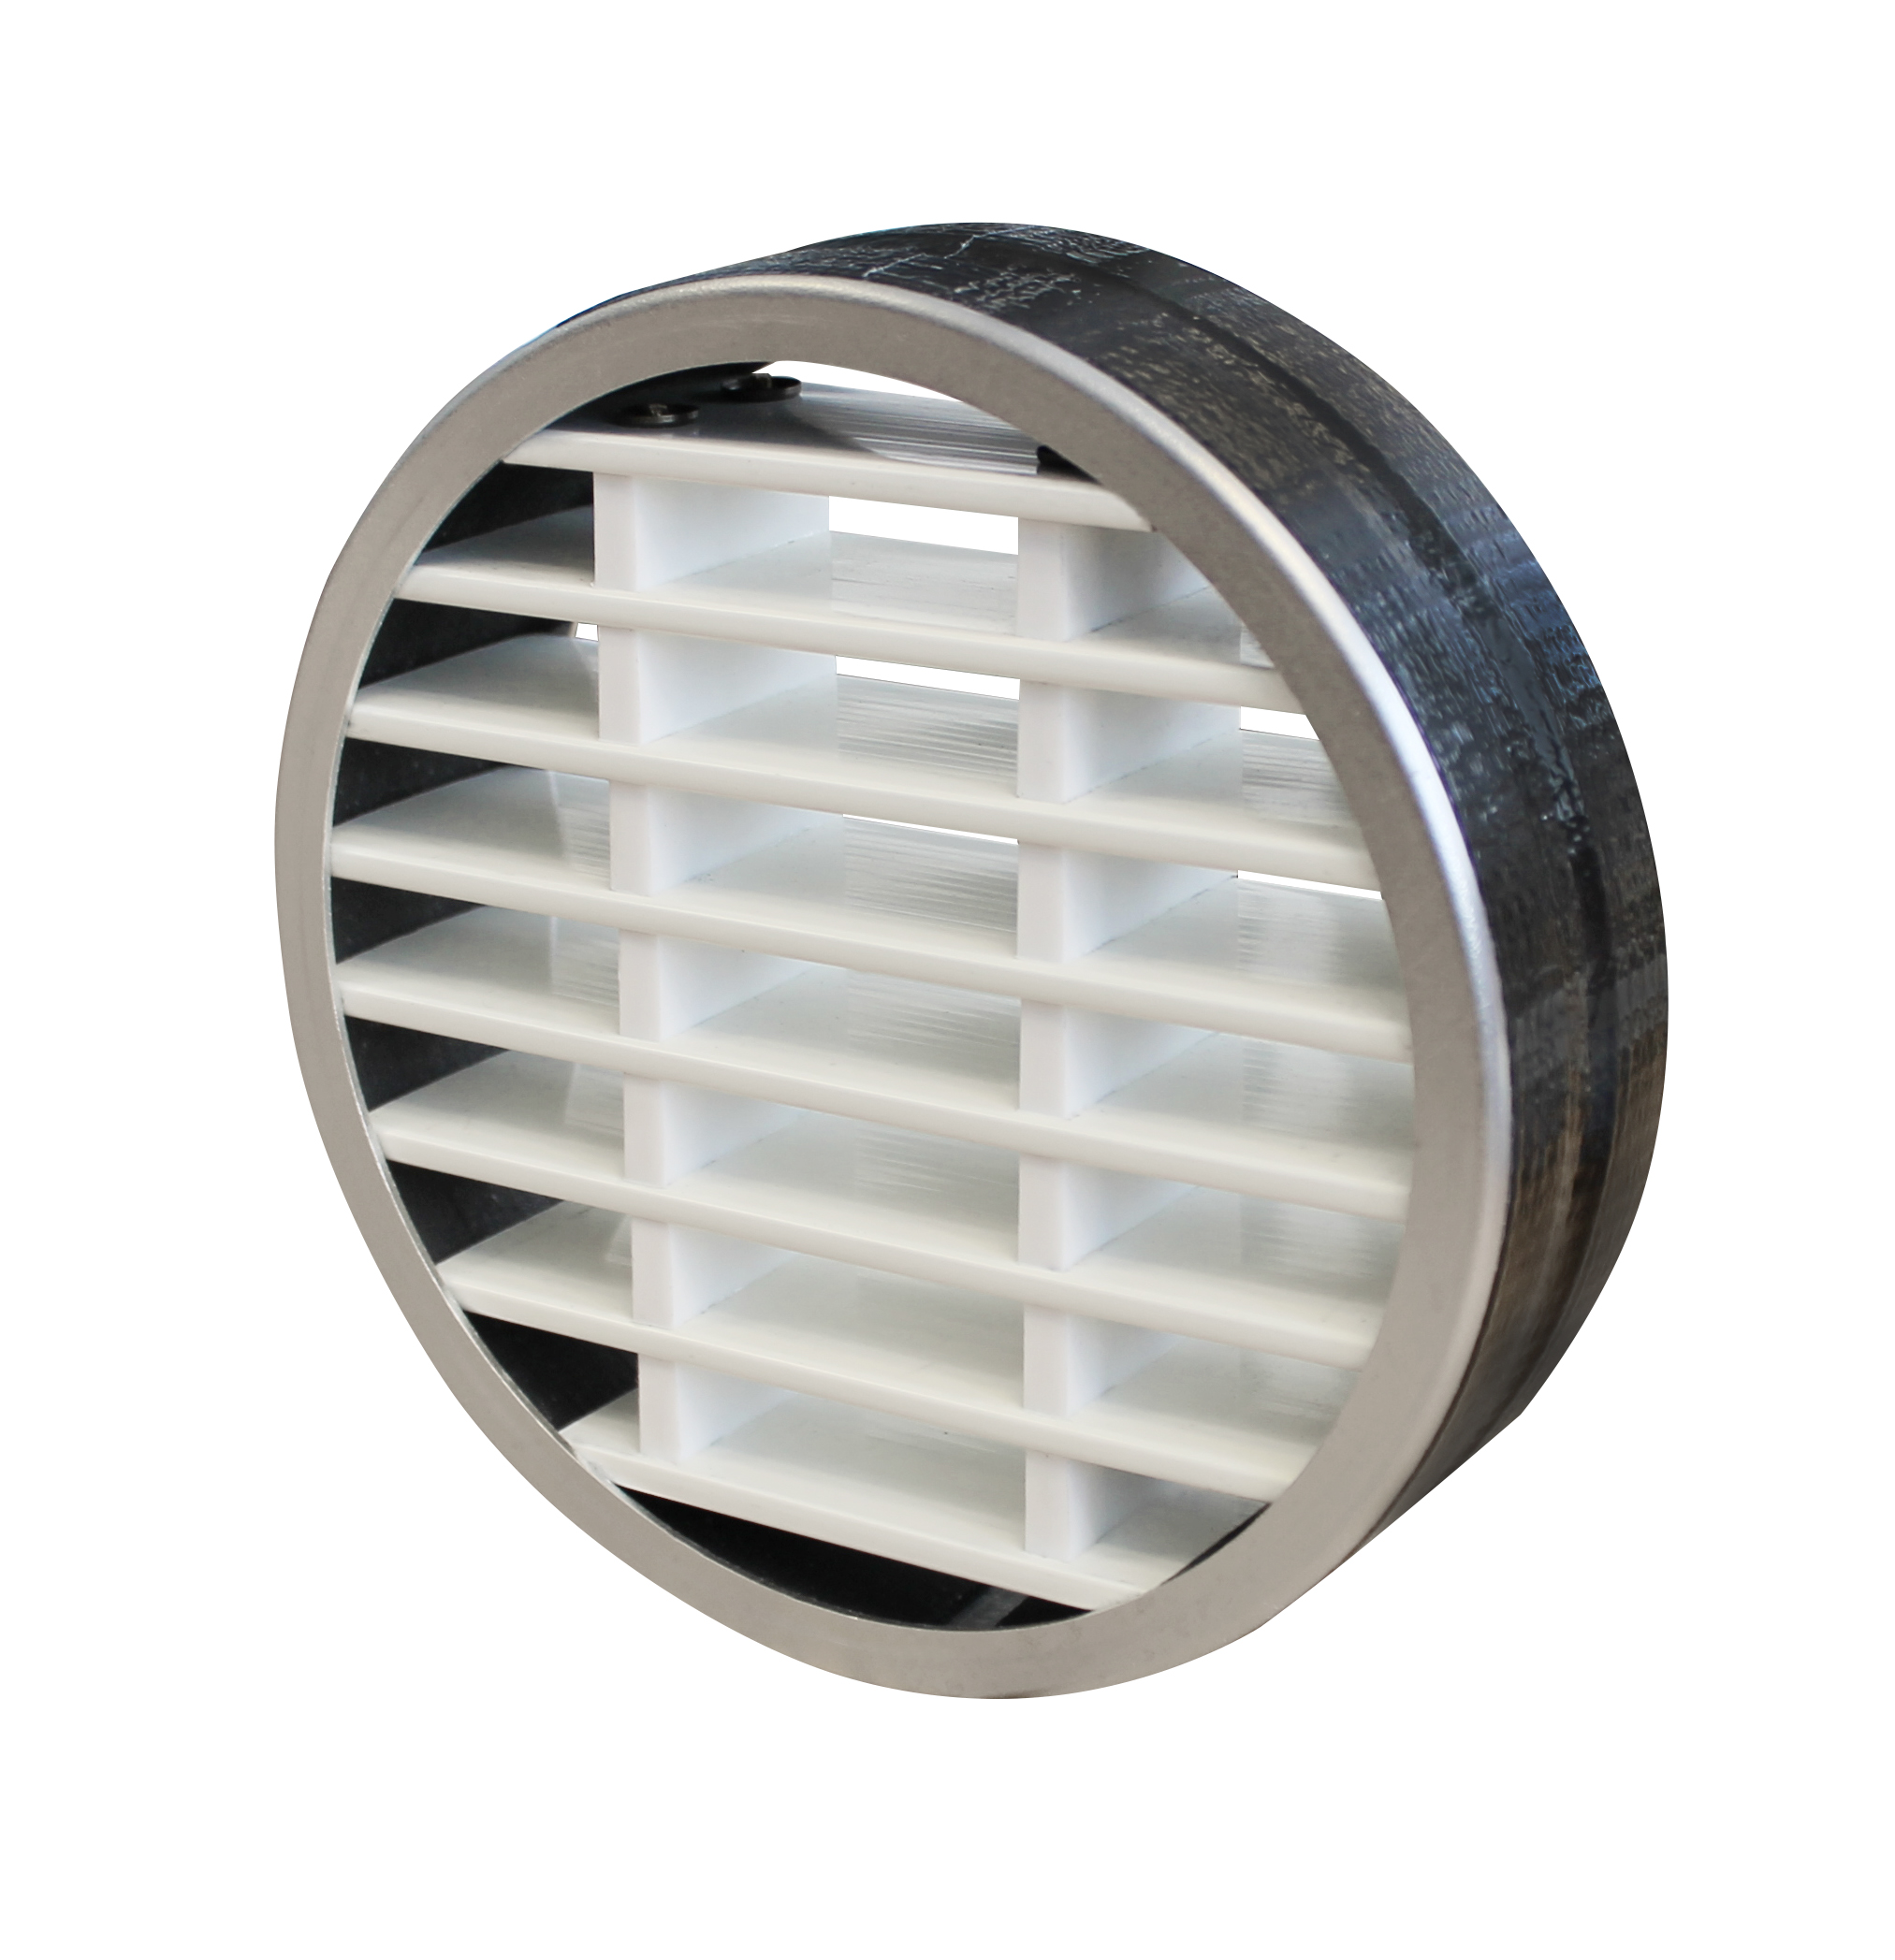 Bathroom Exhaust Fan Fire Damper | Sante Blog